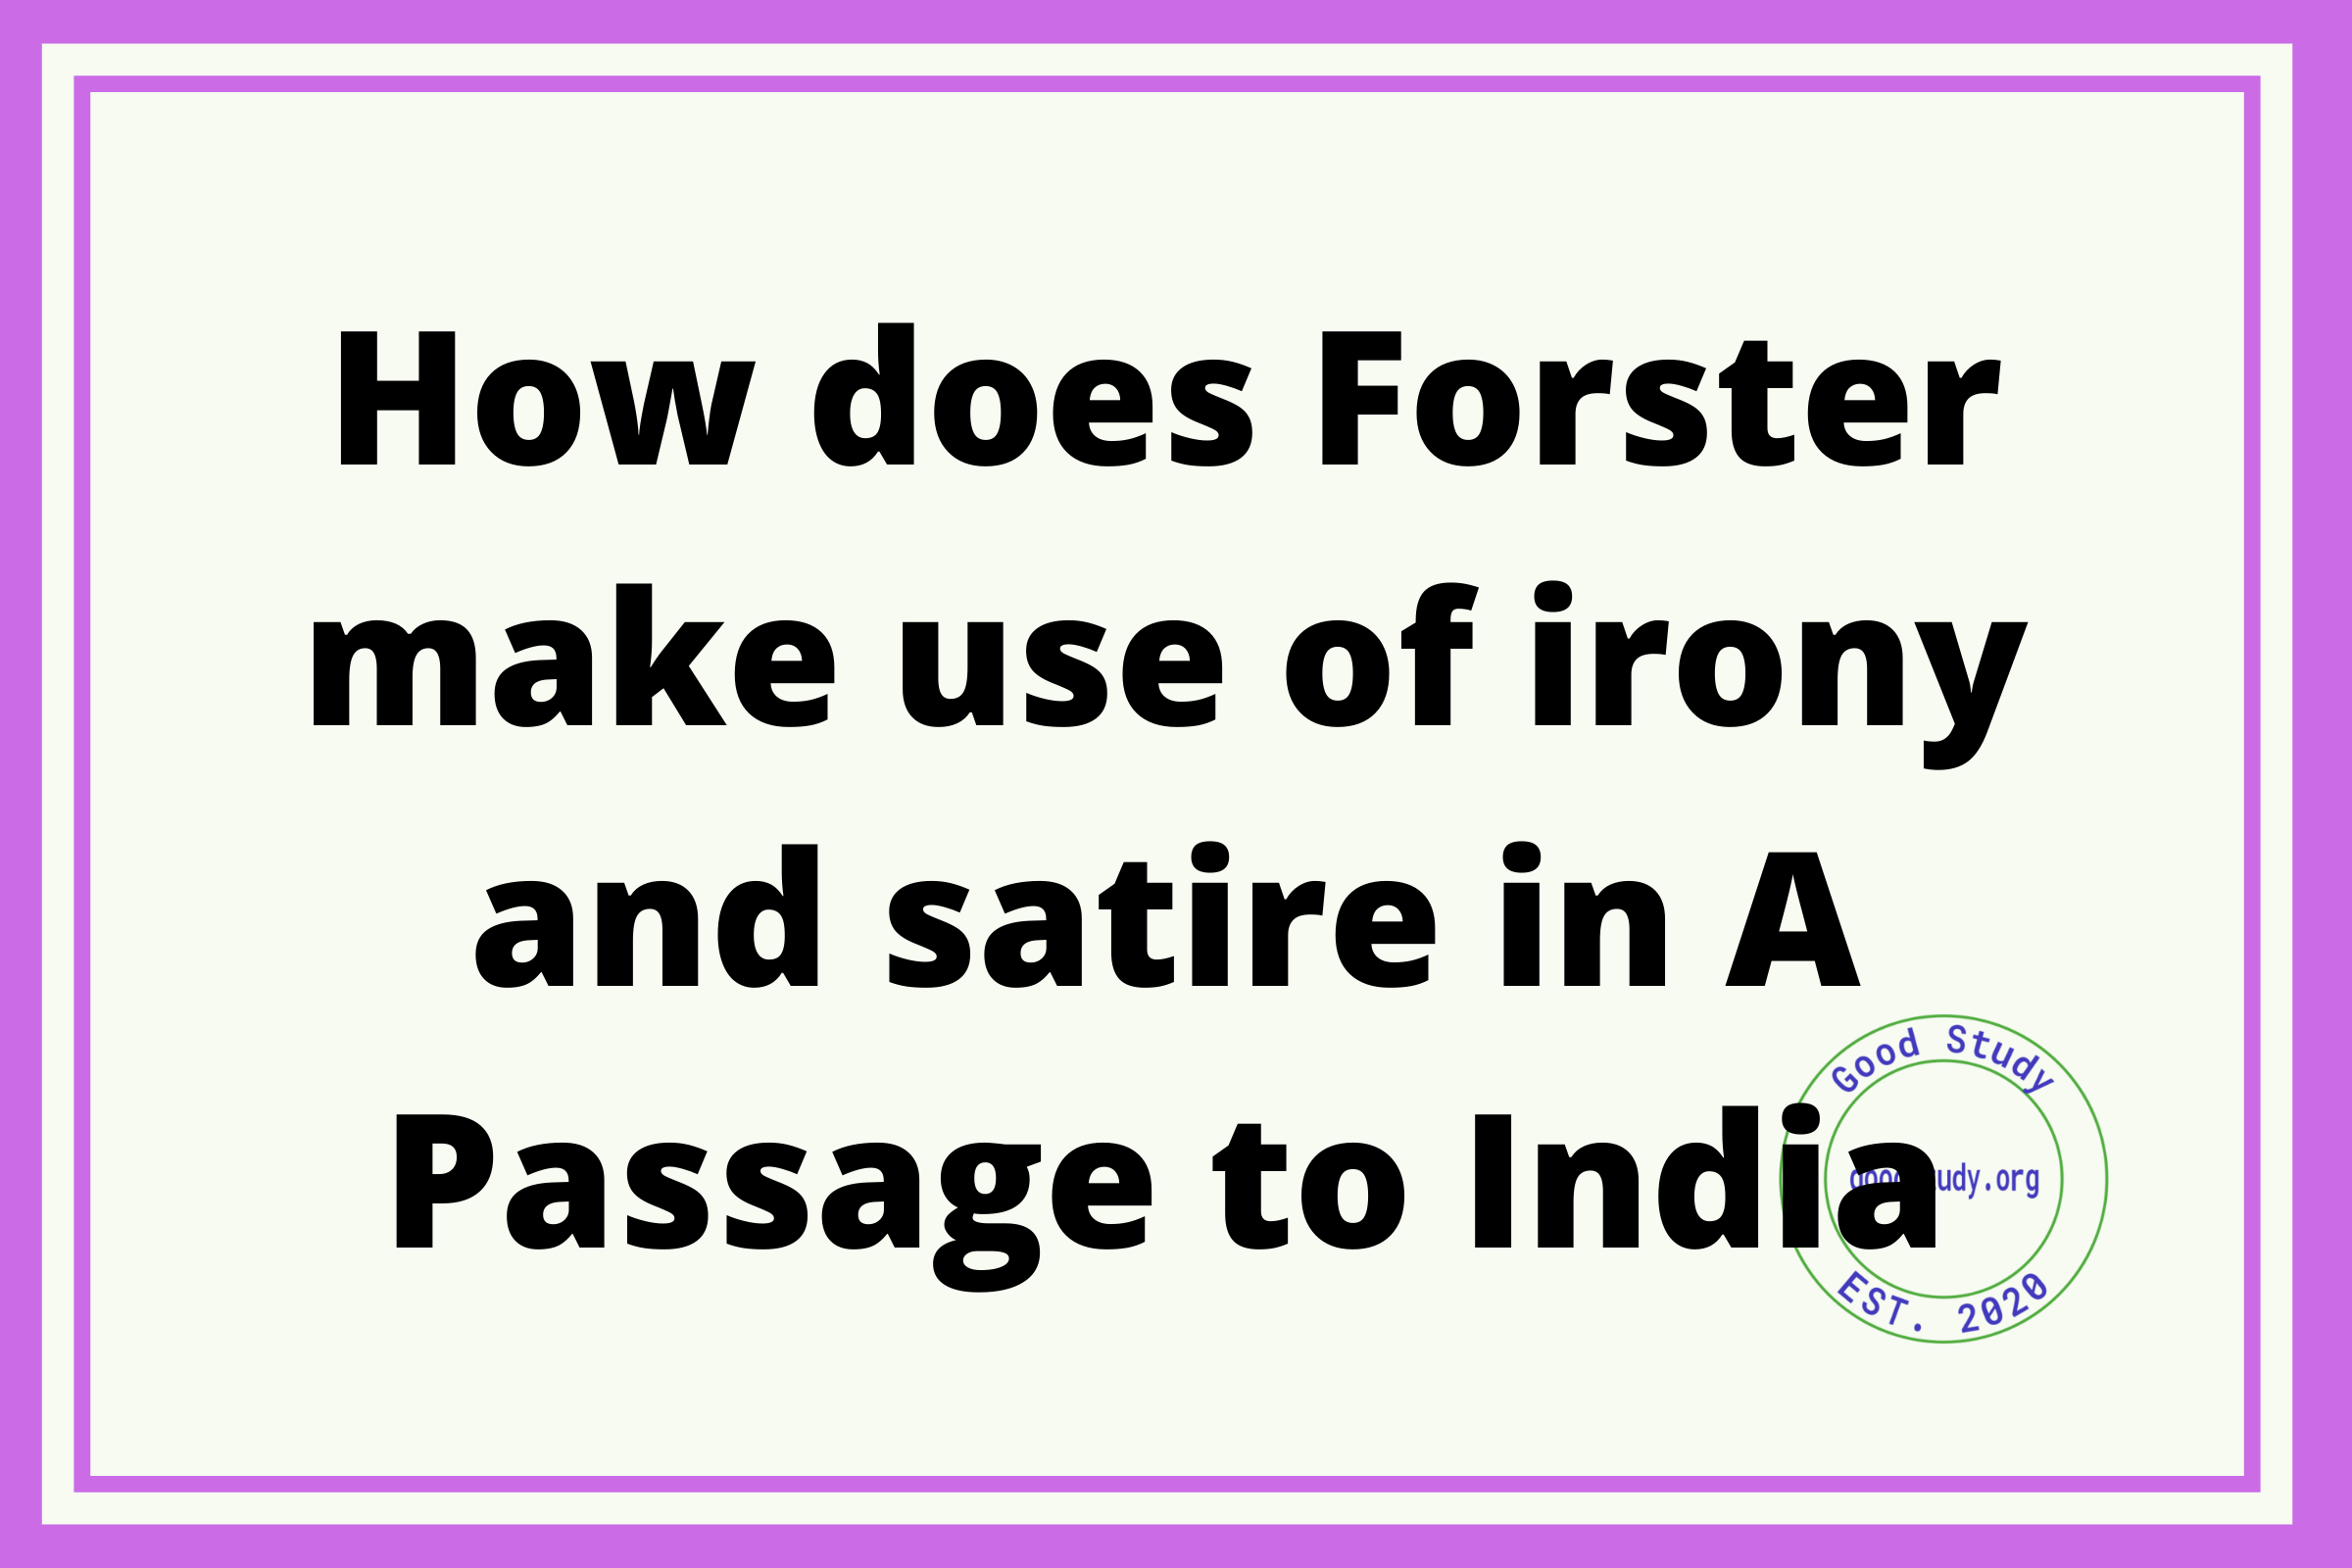 How does Forster make use of irony and satire in A Passage to India